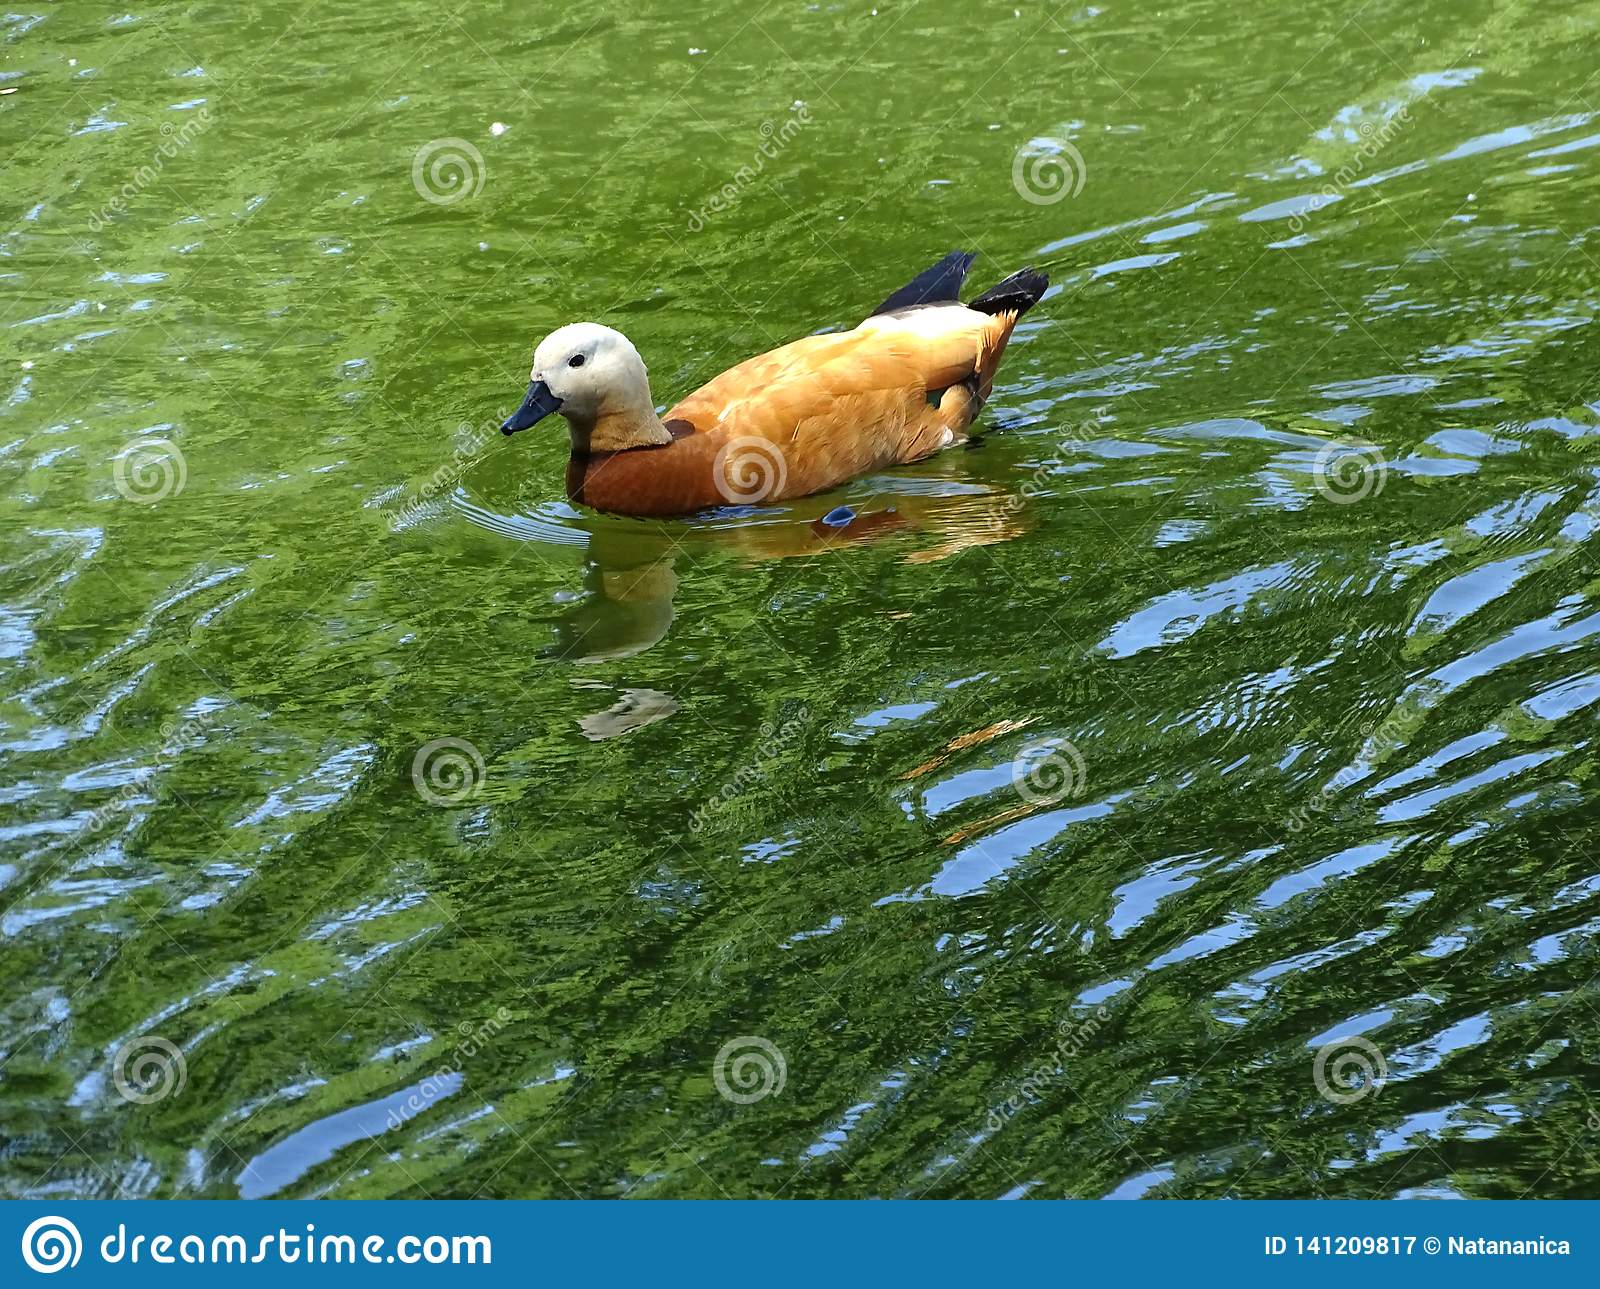 Beautiful Golden Duck swimming in the green lake water